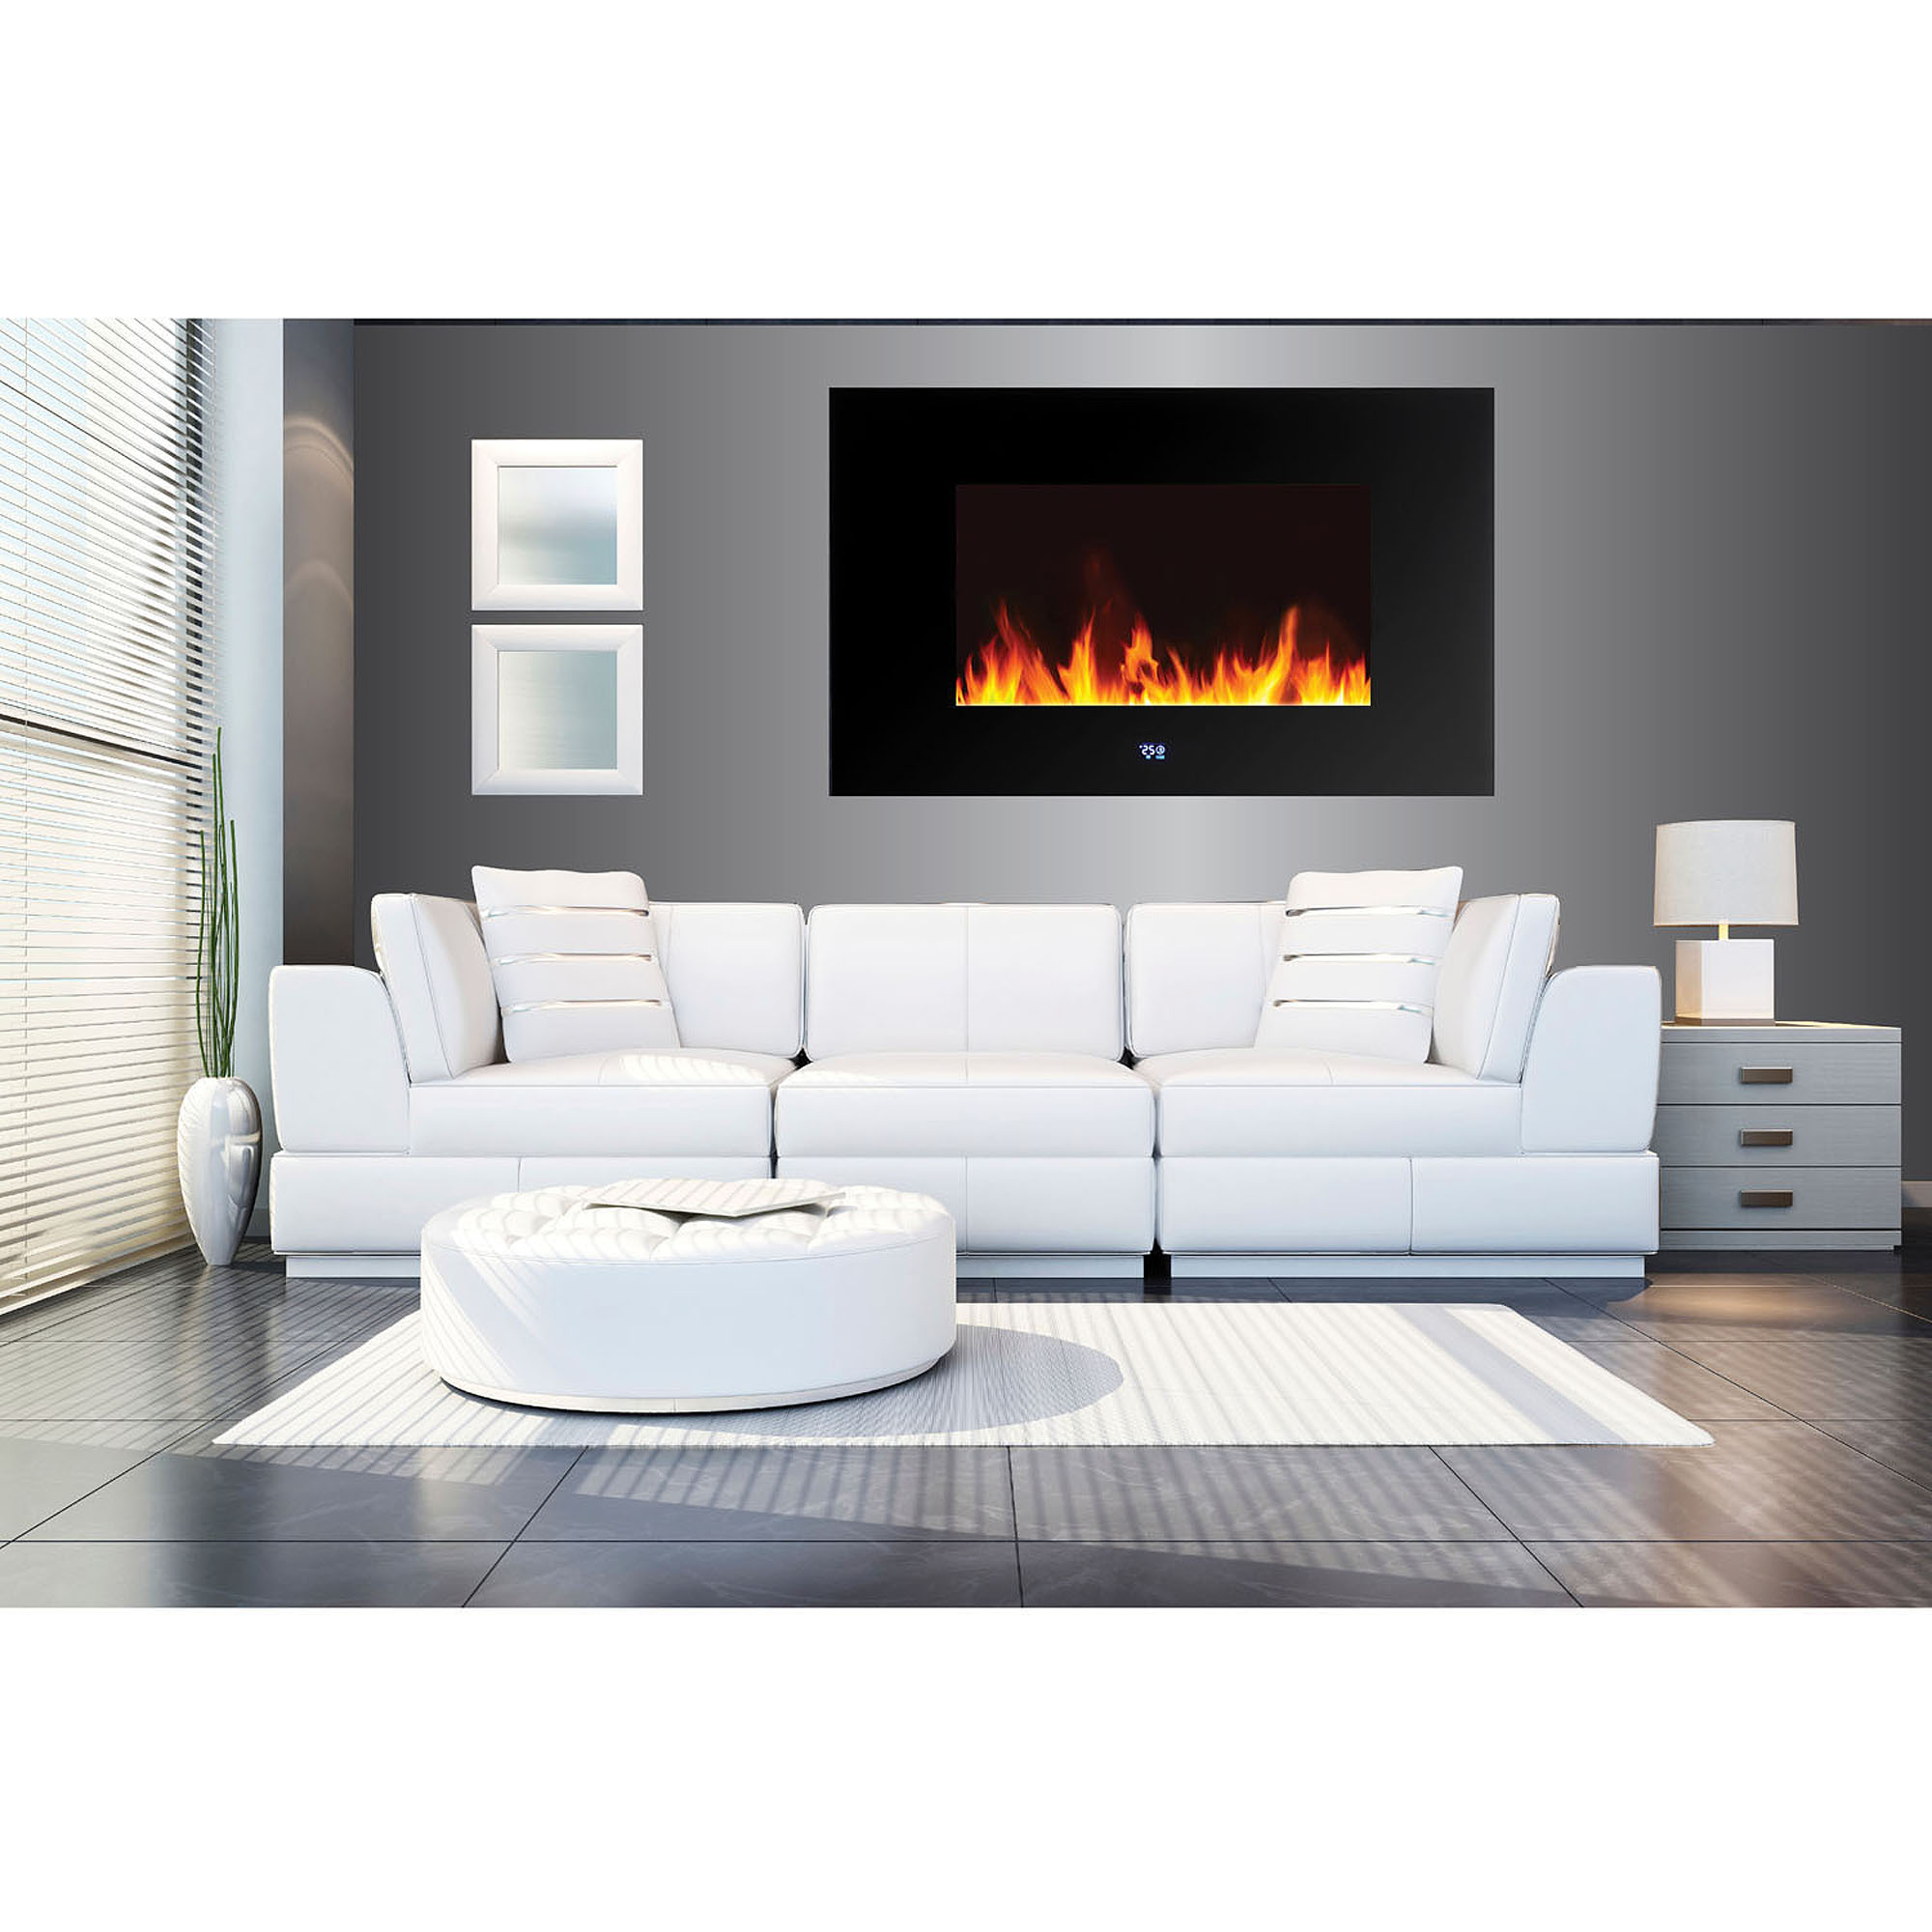 for ip to up mainstays media digital fireplace tvs